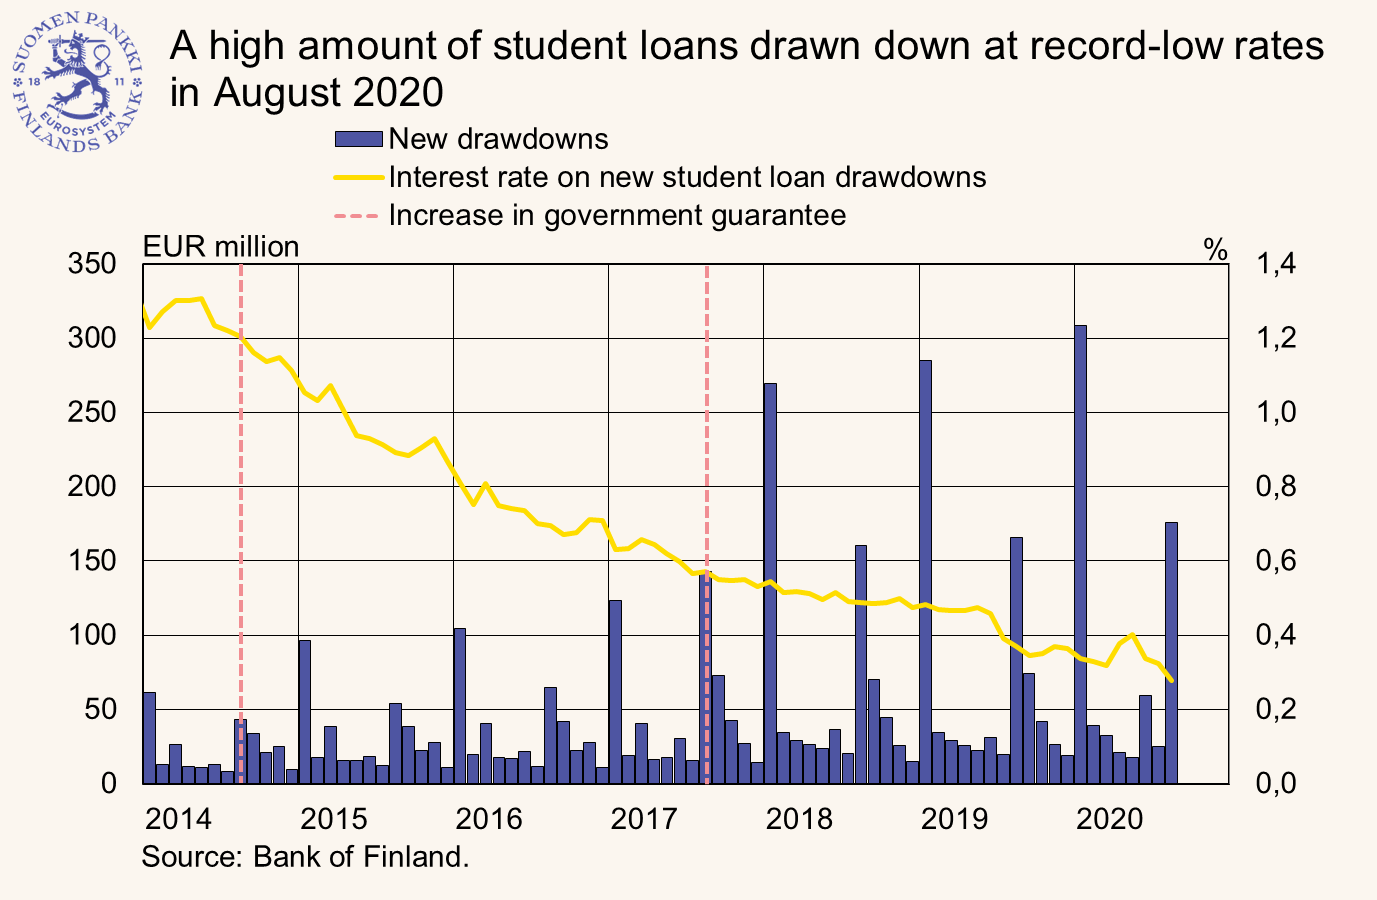 A high amount of student loans drawn down at record-low rates in August 2020